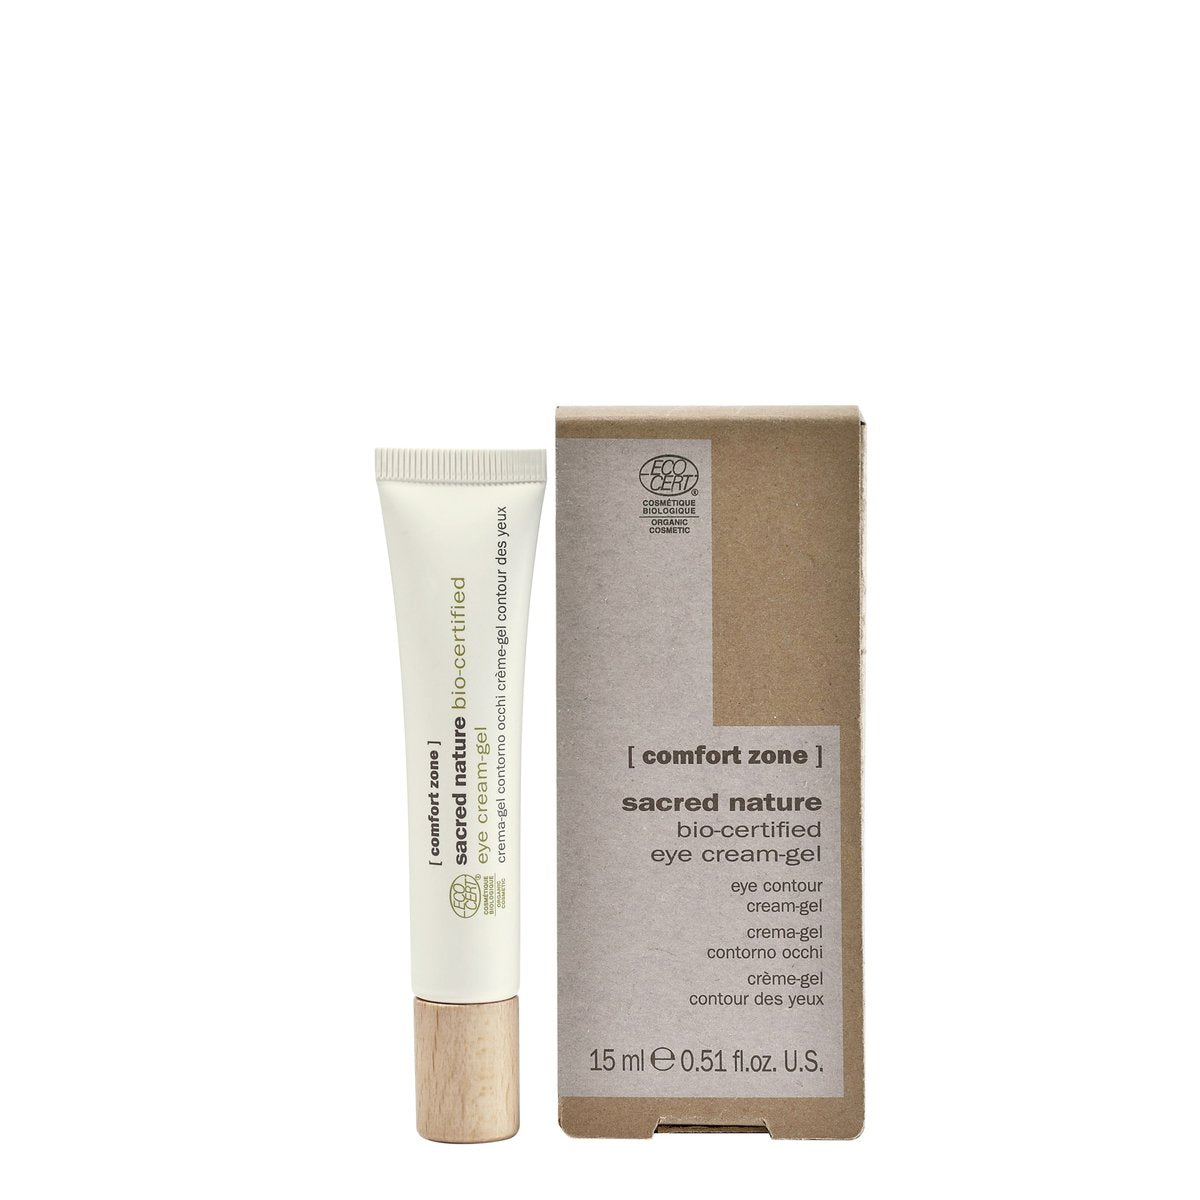 Comfort Zone Sacred Nature Eye Cream-Gel